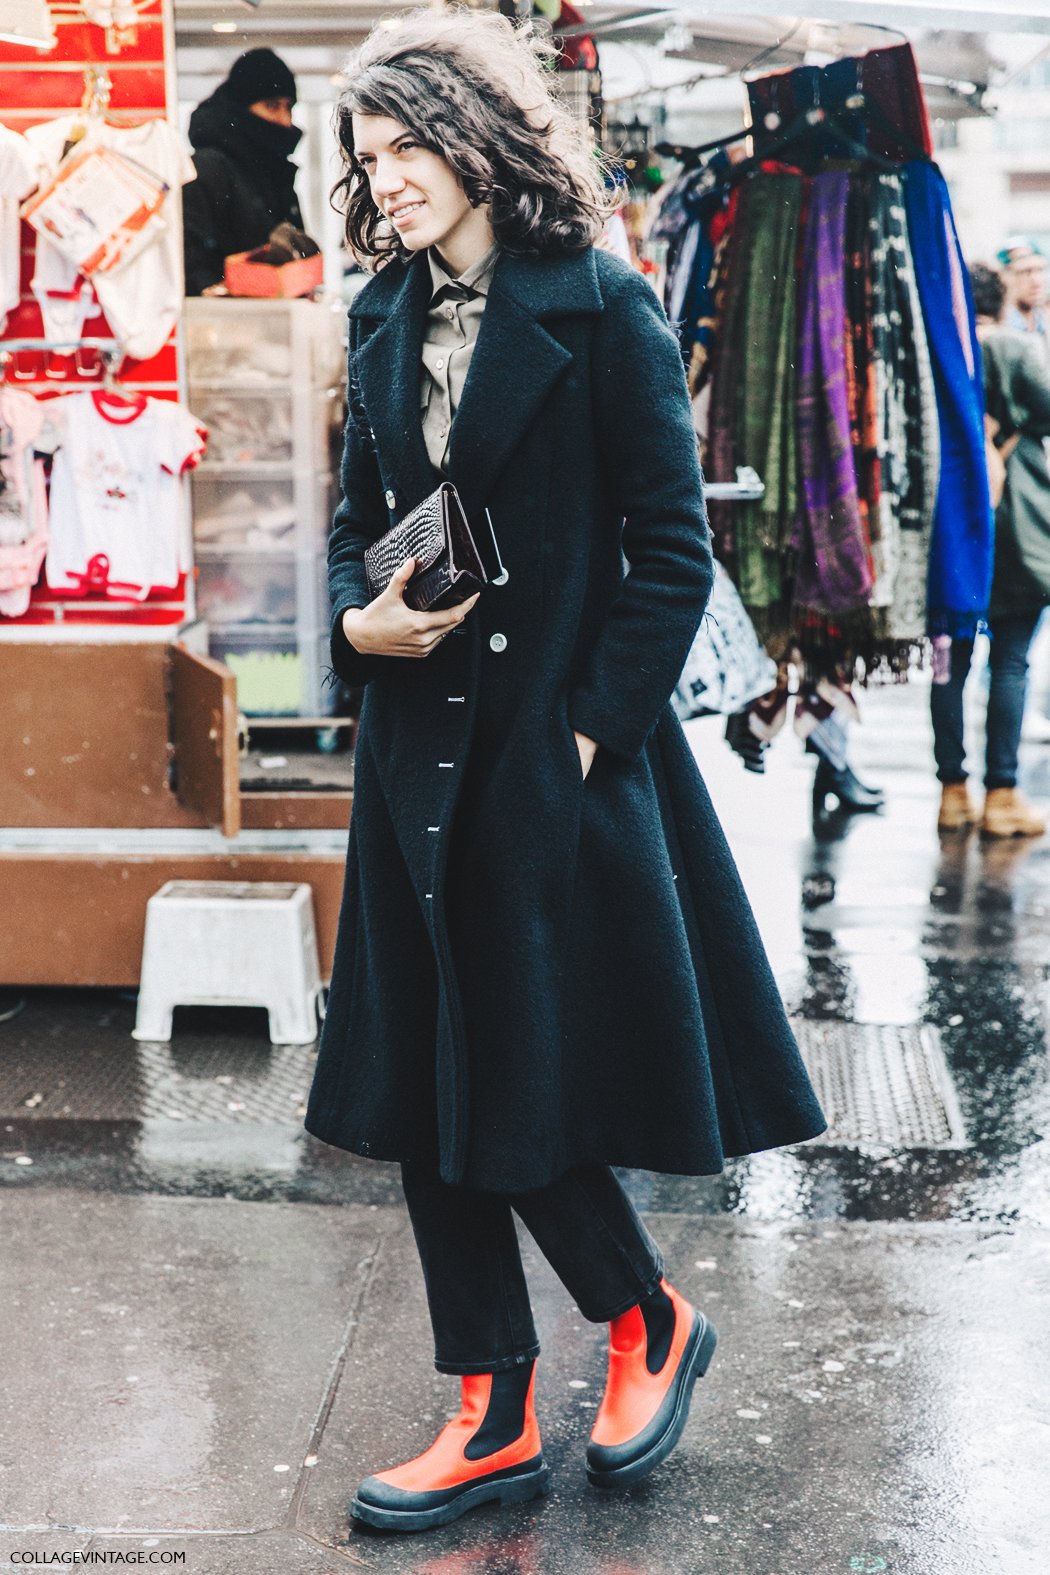 PFW-Paris_Fashion_Week_Fall_2016-Street_Style-Collage_Vintage-Black_Coat-Celine_Rainy_Boots-